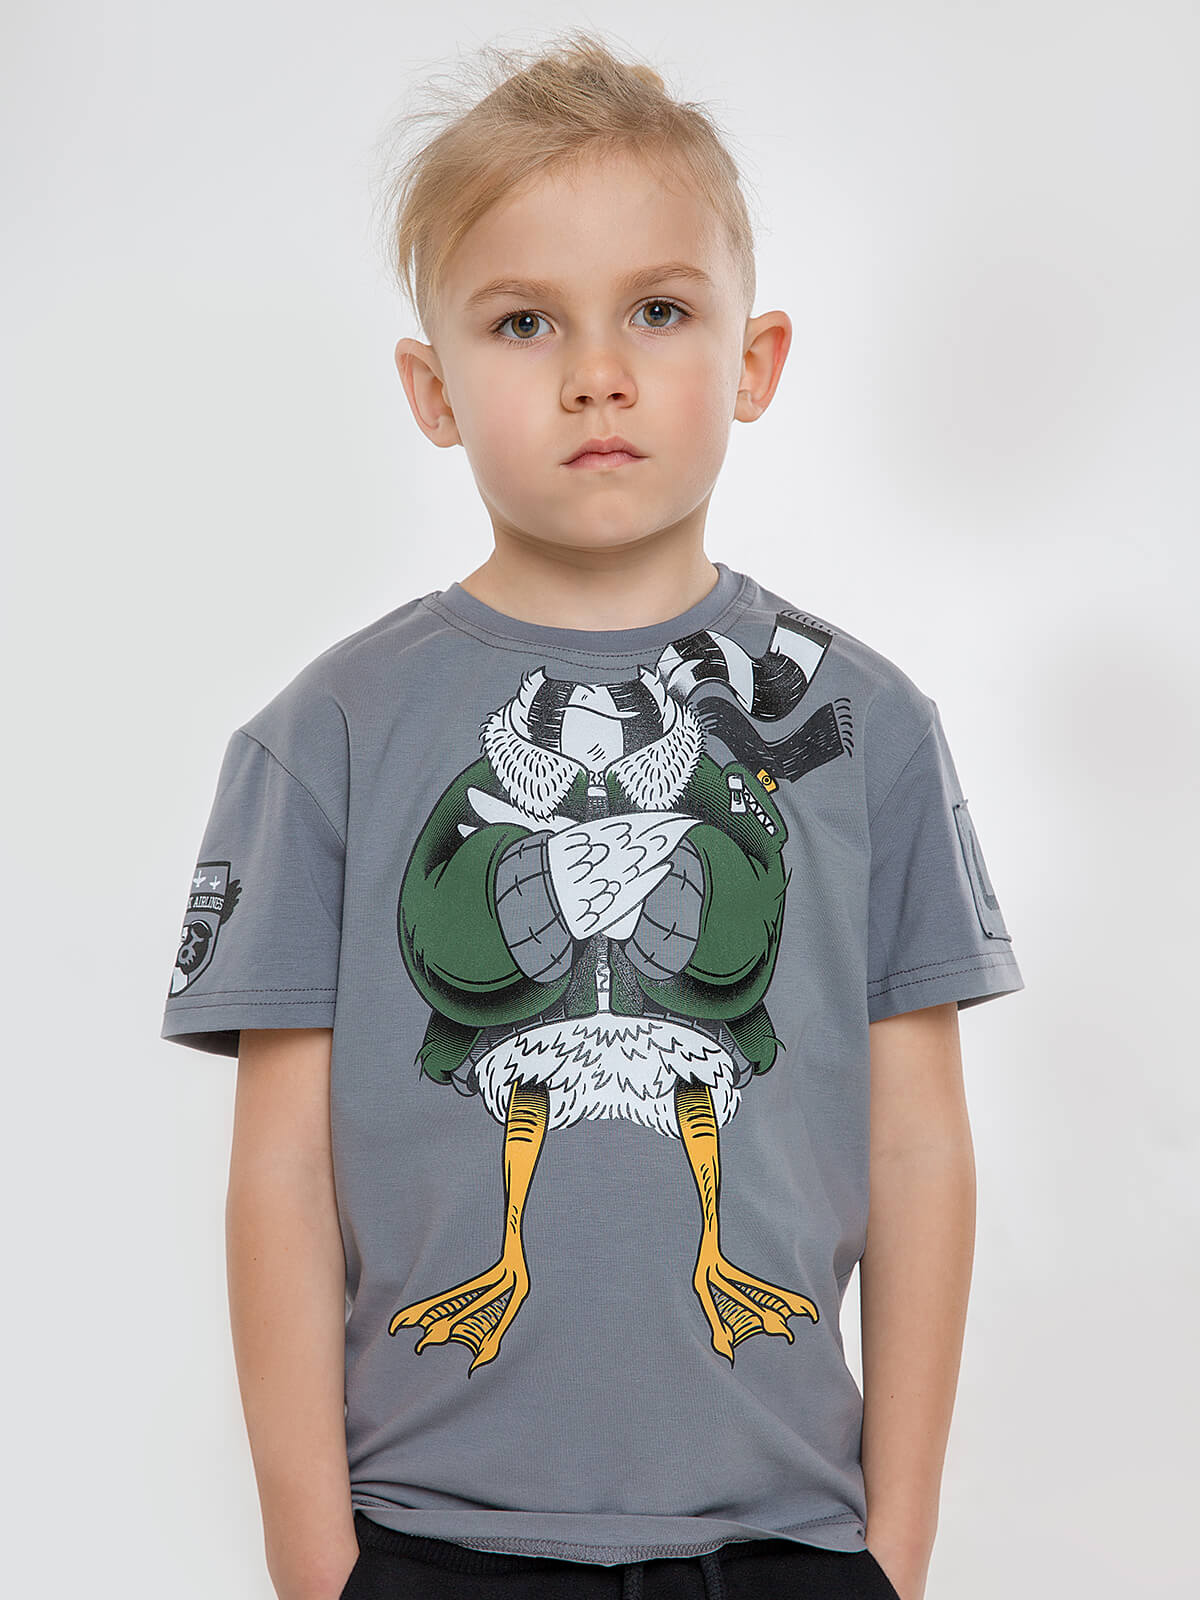 Kids T-Shirt Goose. Color gray. Material: 95% cotton, 5% spandex.